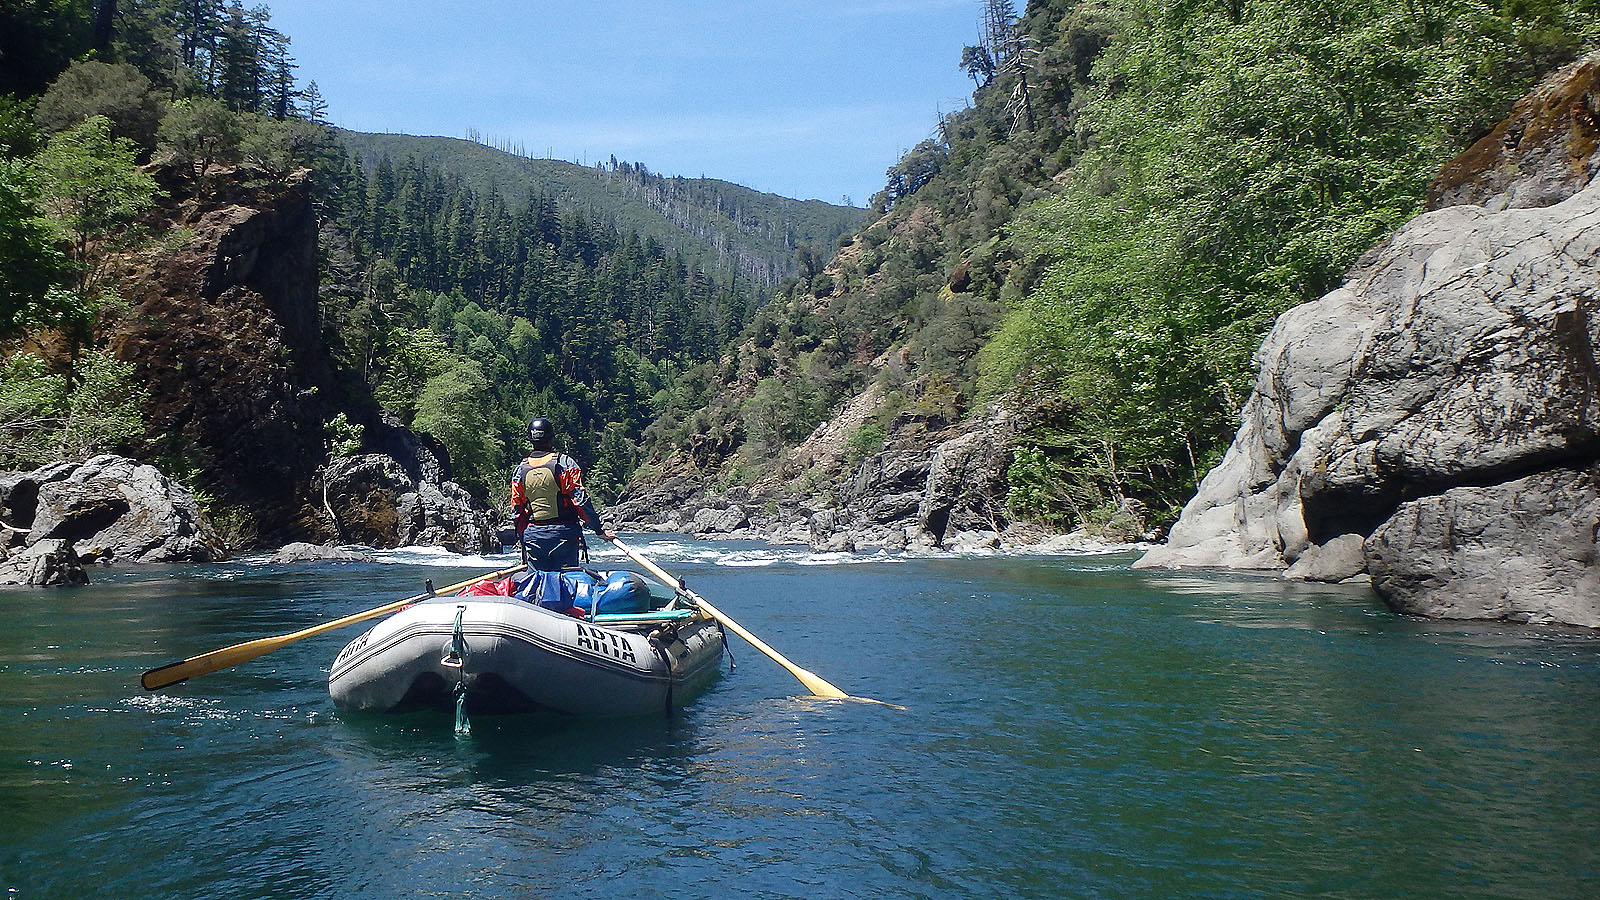 Entering another unnamed rapid on the Illinois River in Southern Oregon